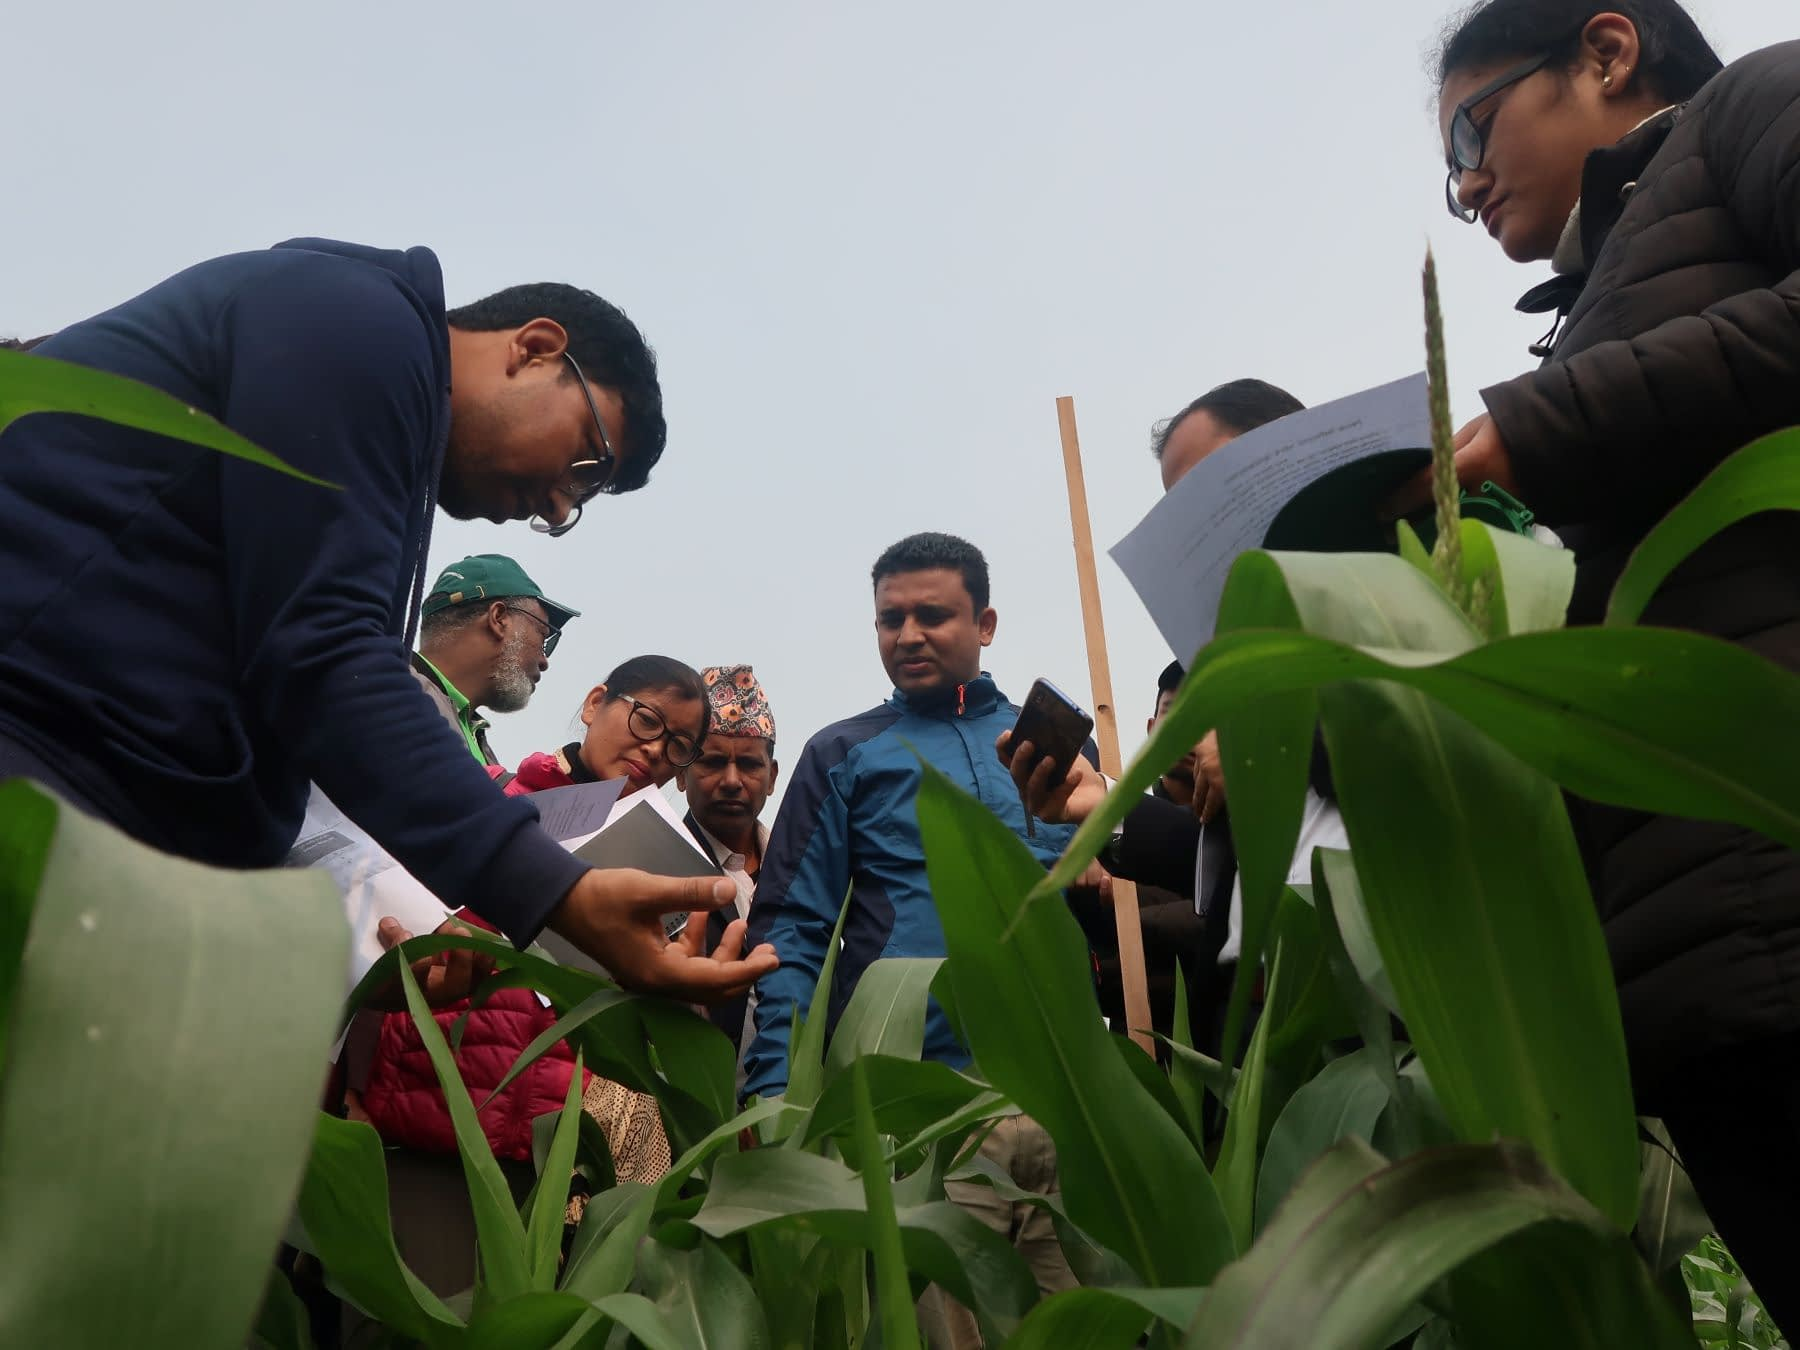 Participants in one of the trainings learn how to scout and collect data on fall armyworm in a maize field. (Photo: Bandana Pradhan/CIMMYT)